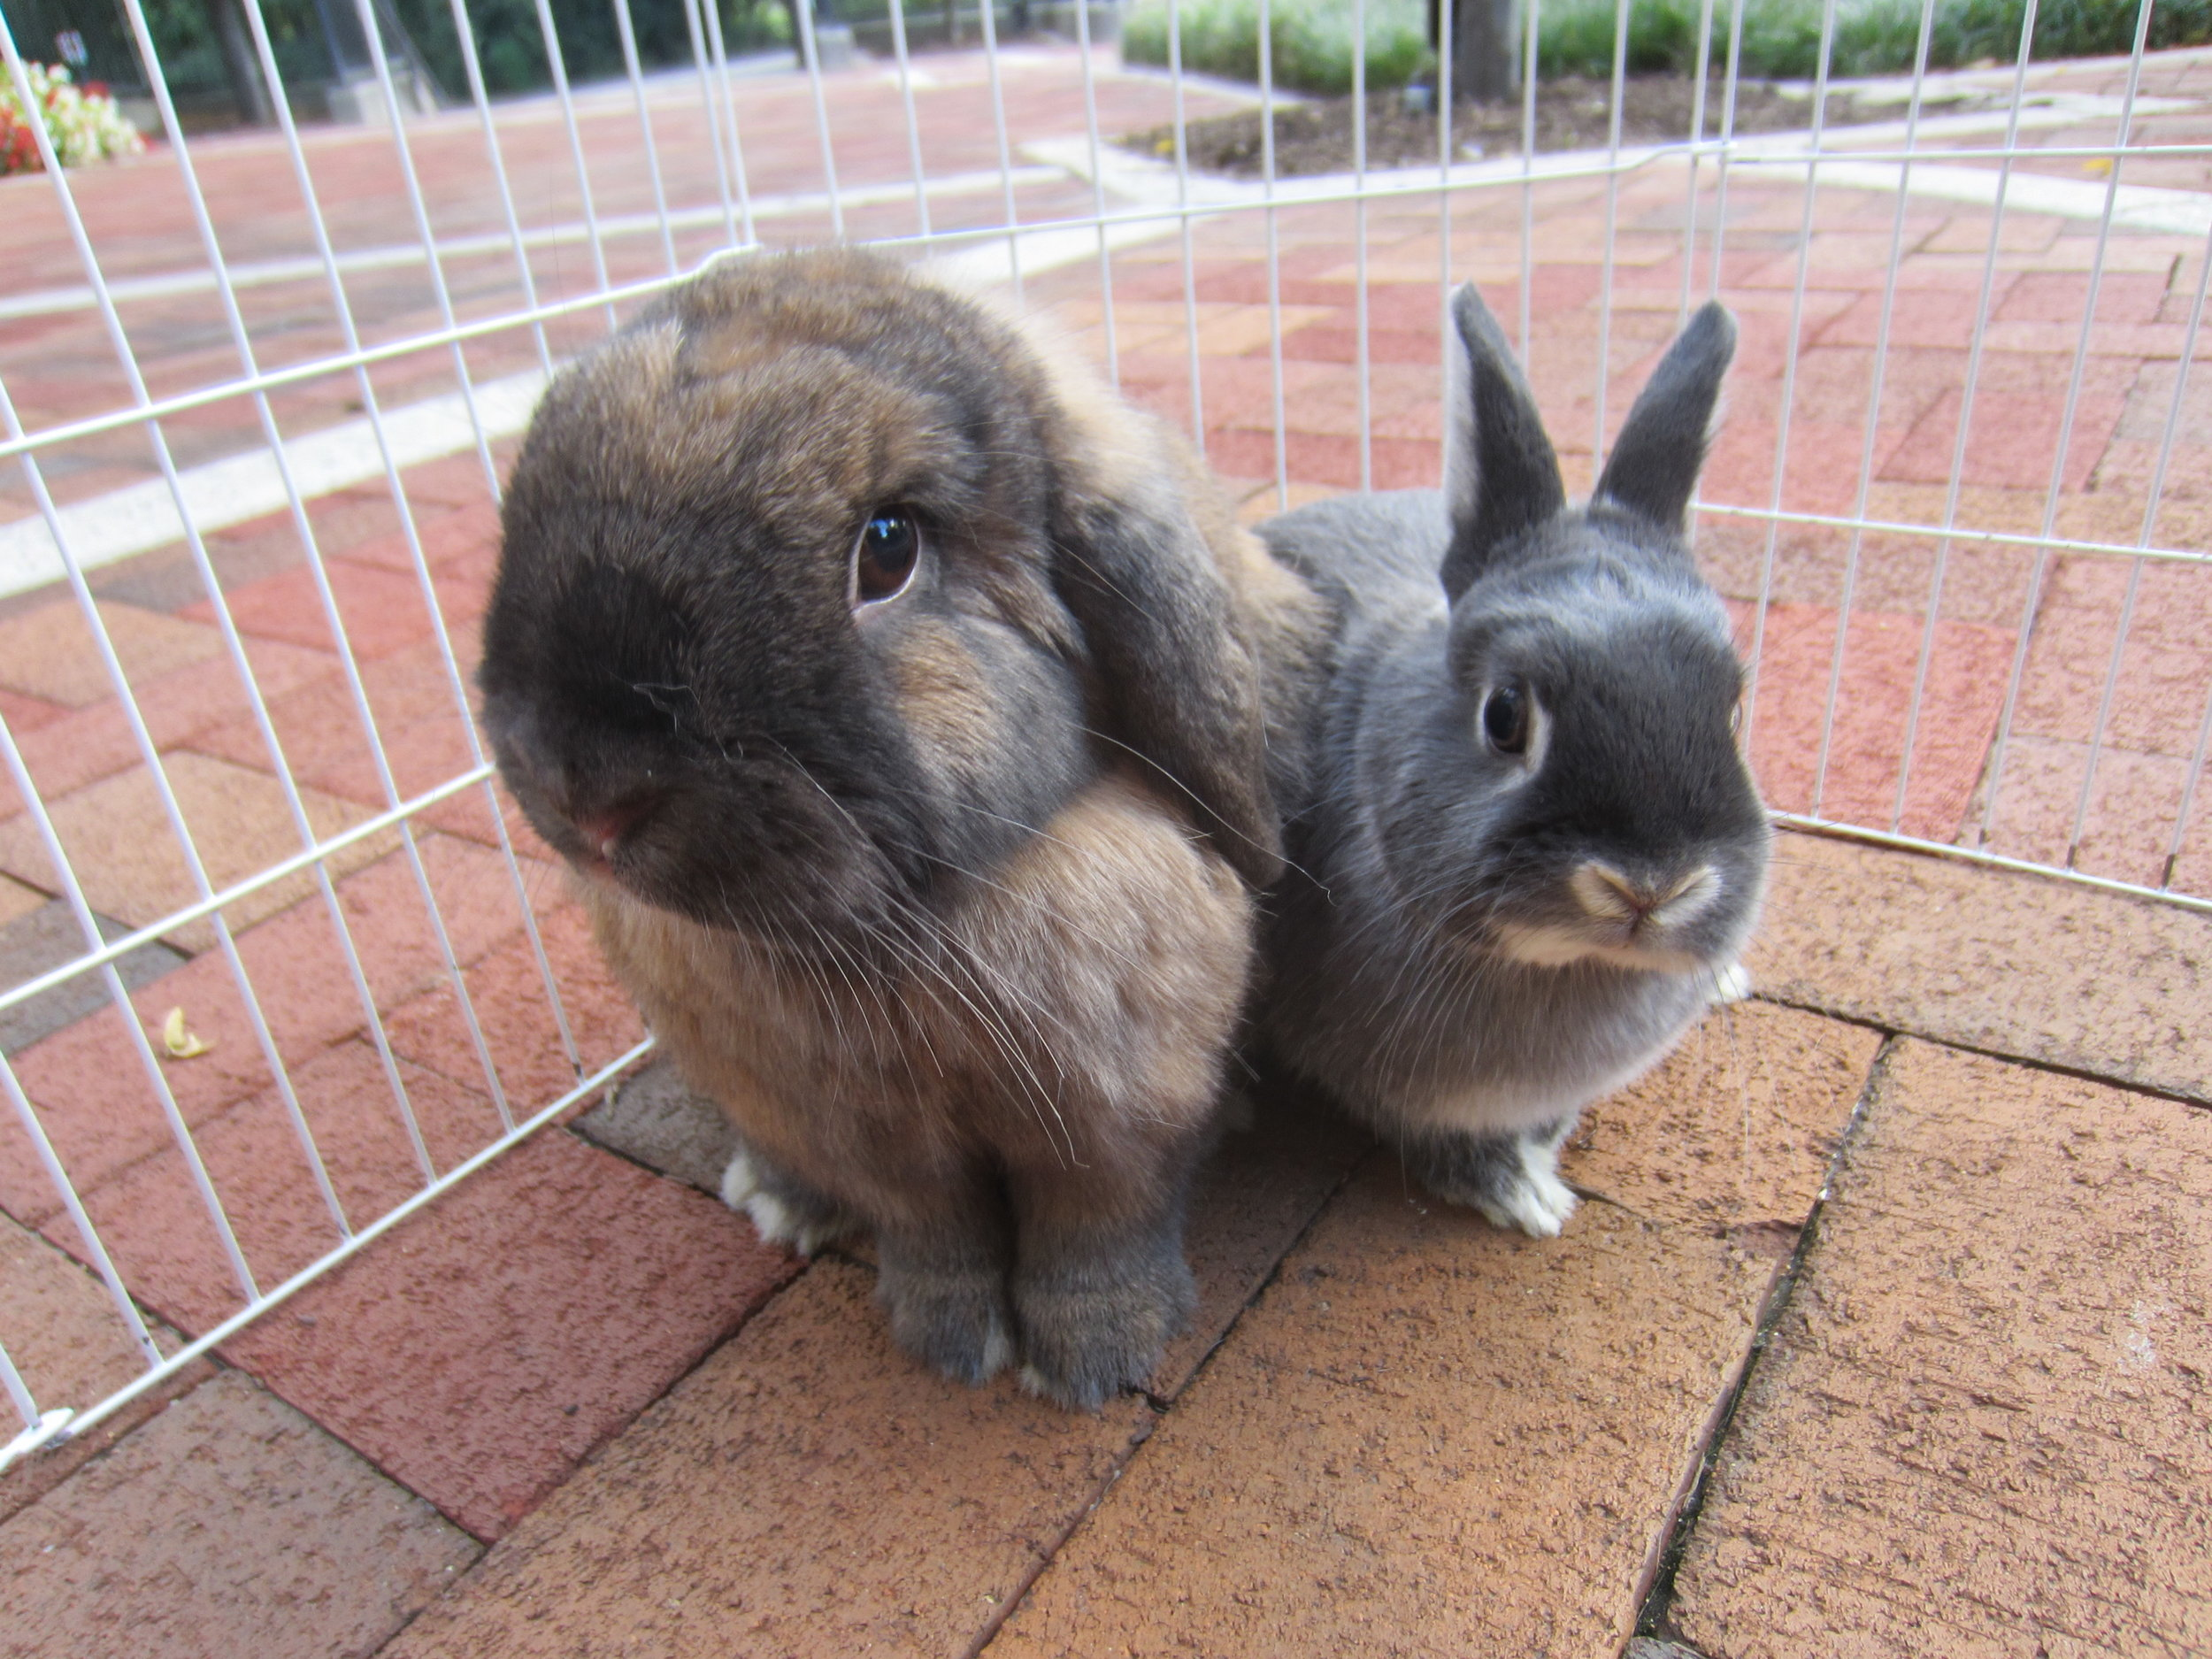 Bunnies Go Out on the Patio to Sniff the Fresh Fall Air 1